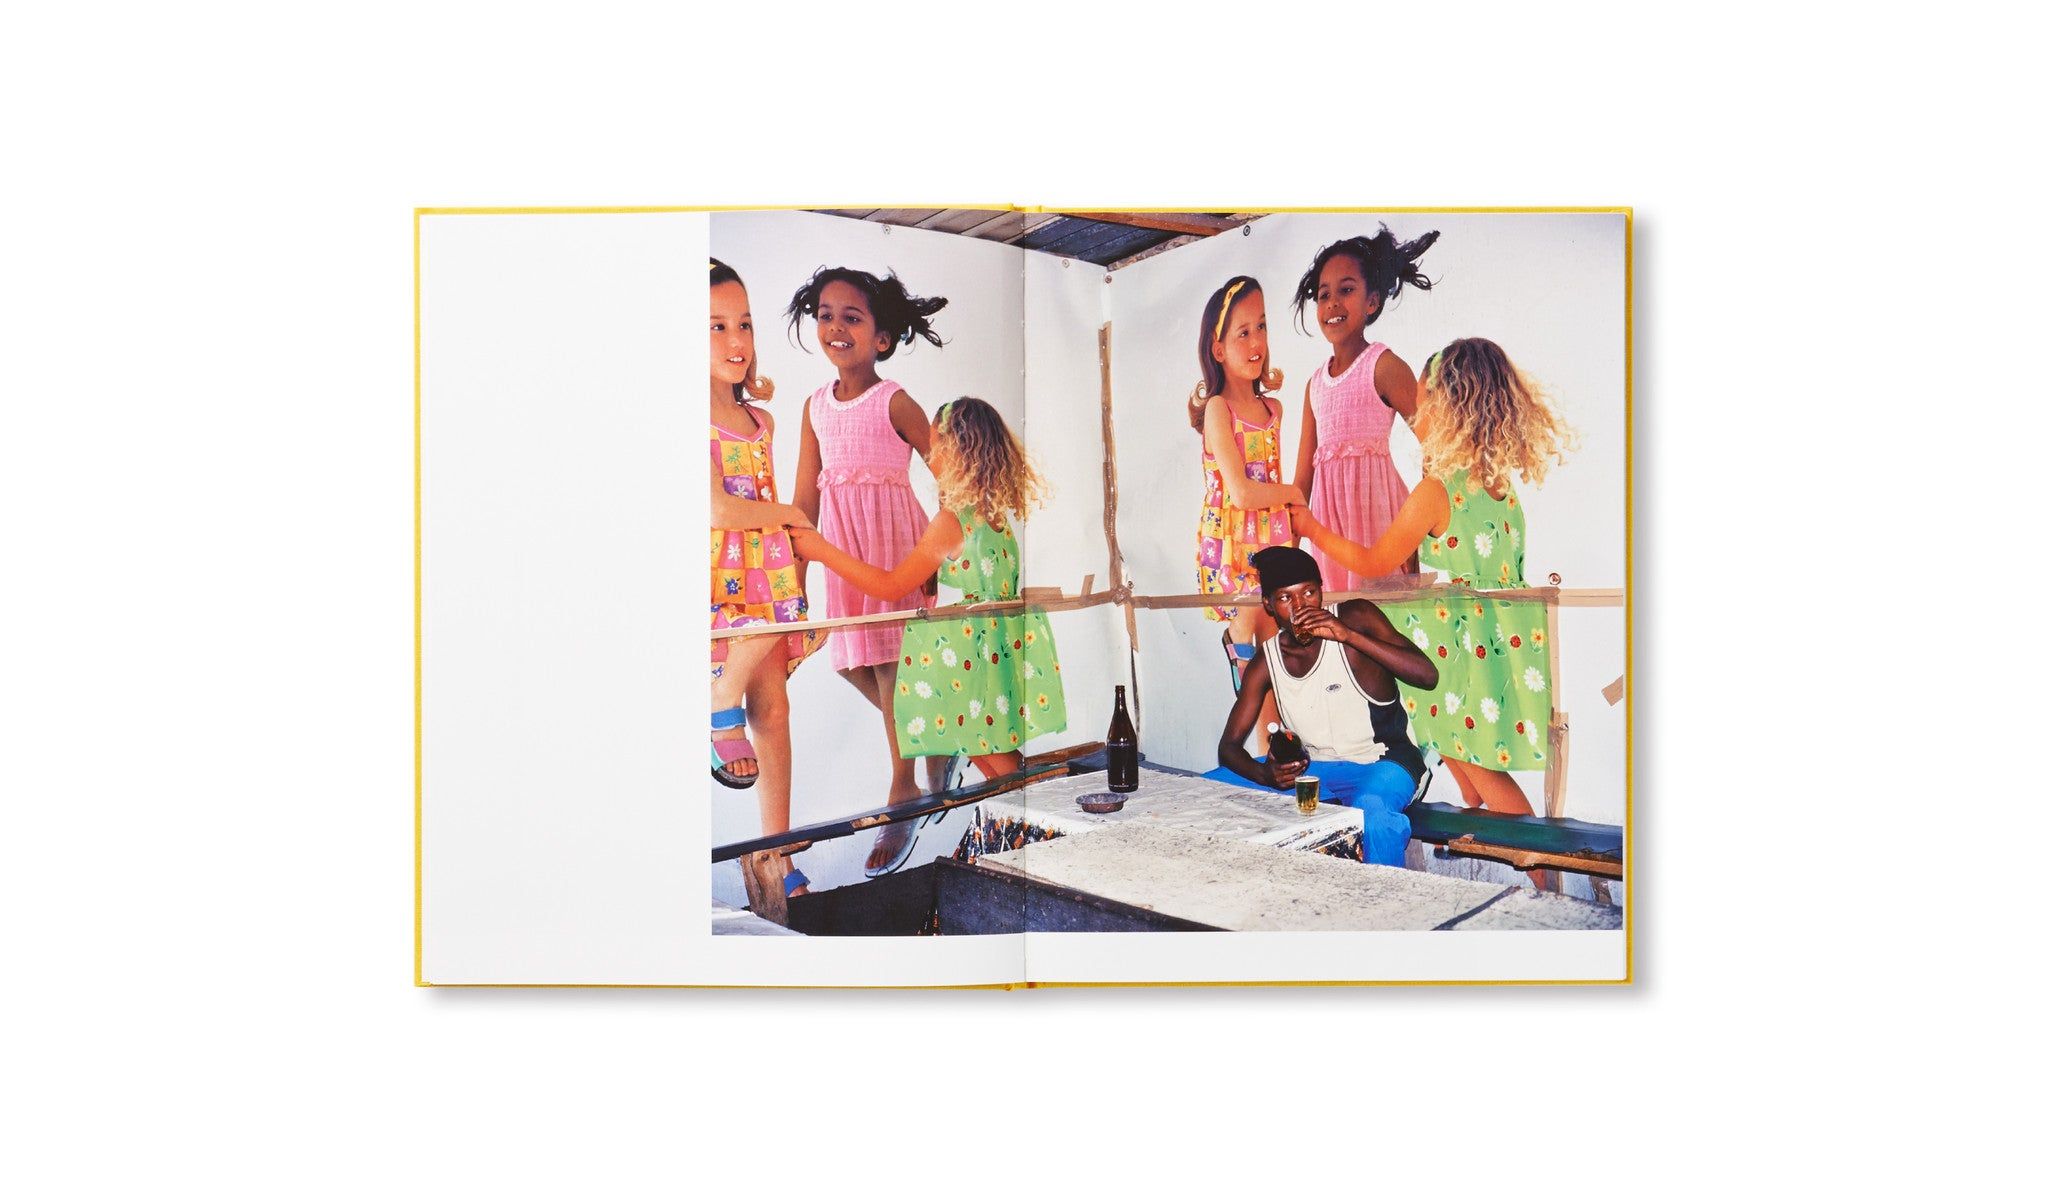 DIE SON SIEN ALLES by Viviane Sassen [SECOND EDITION / SIGNED]